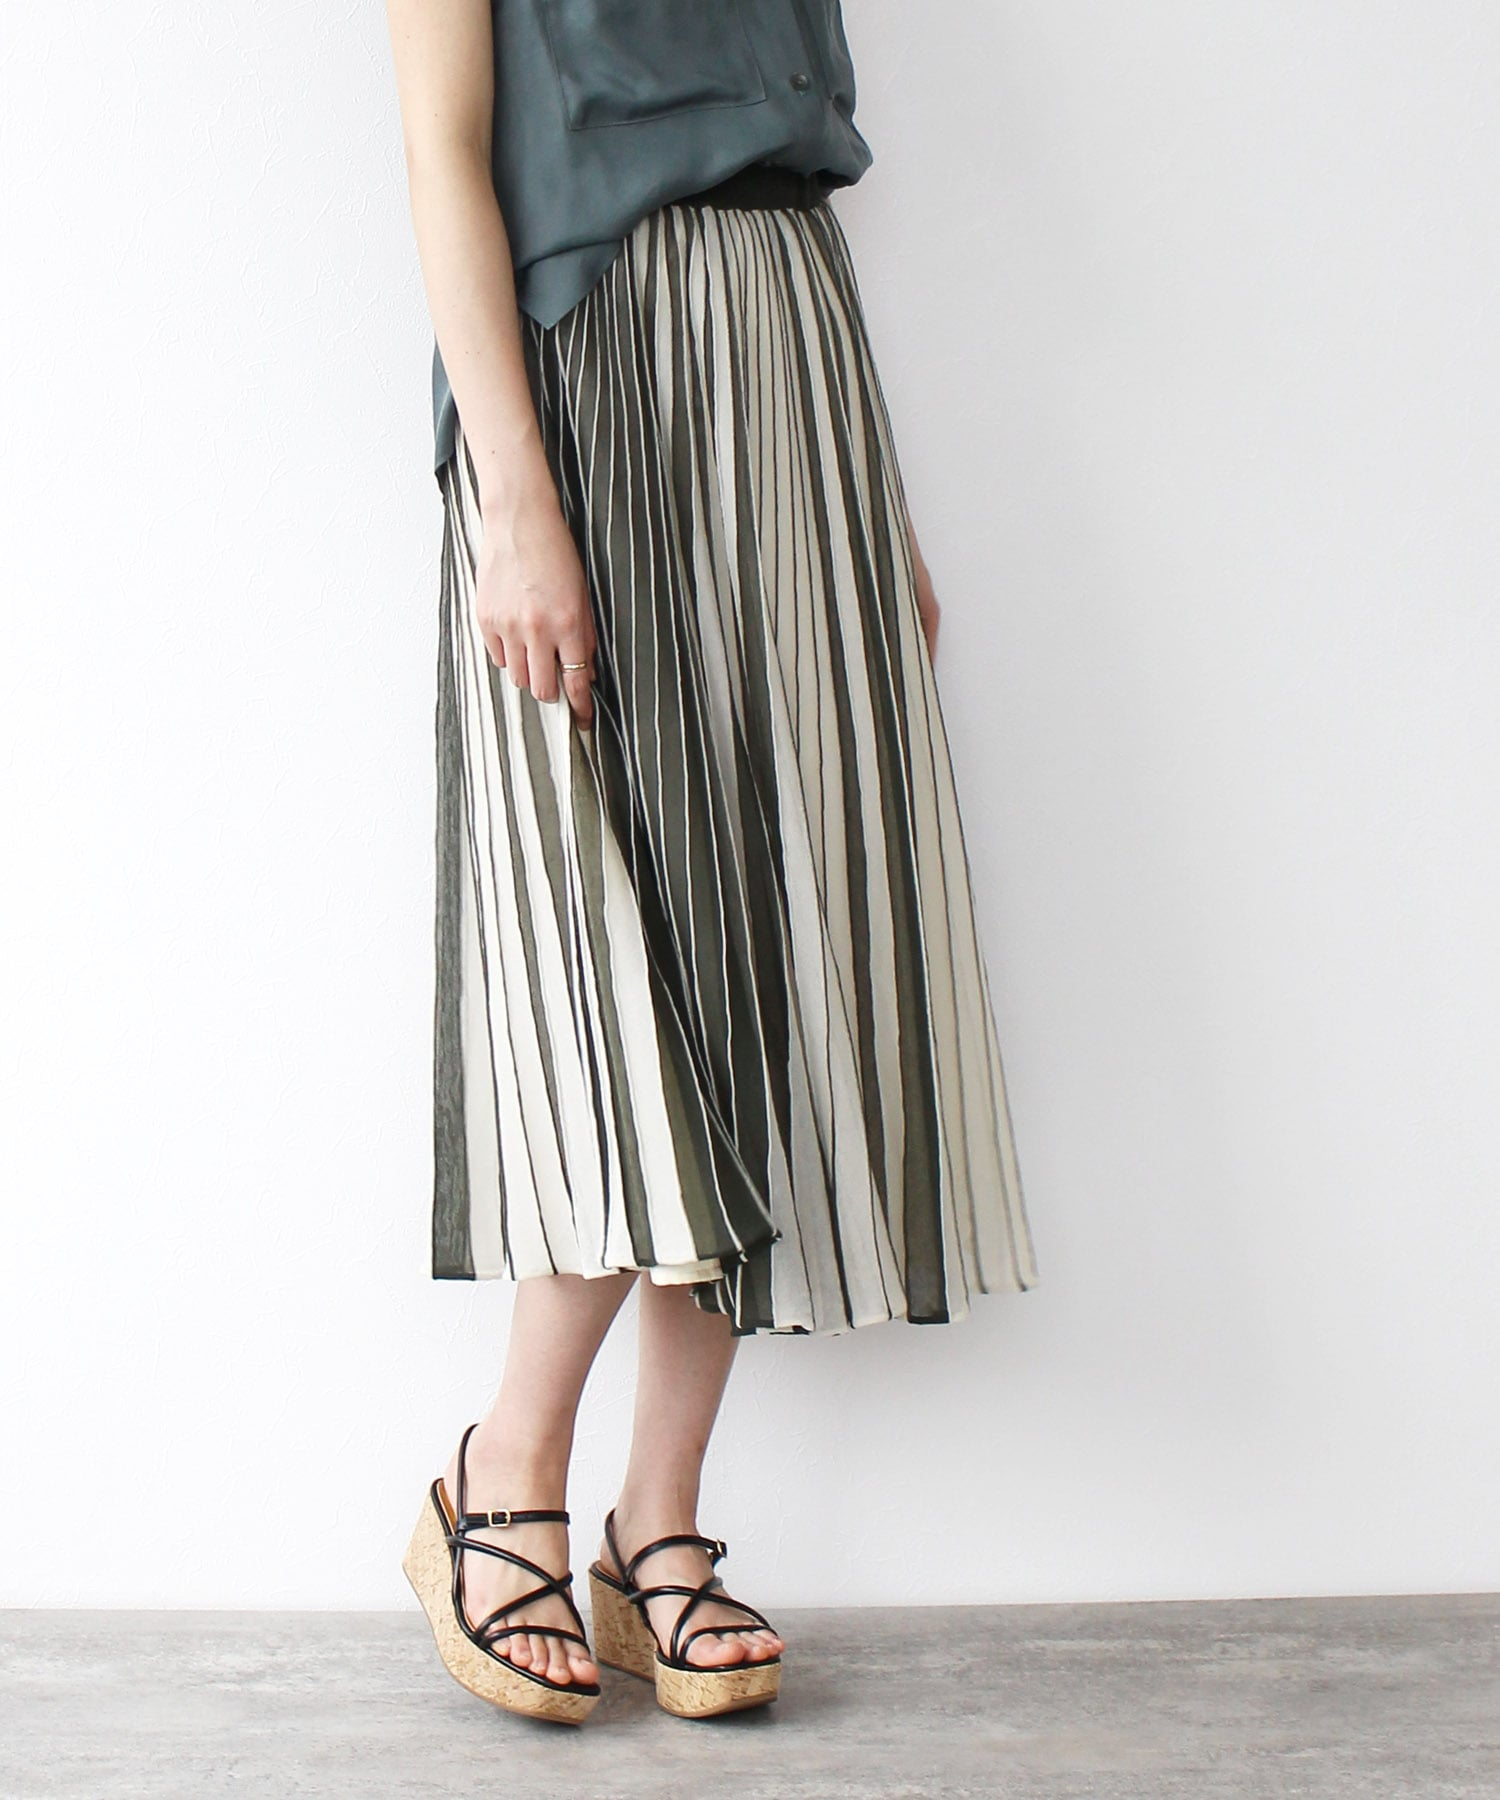 COVER sheer flare skirt